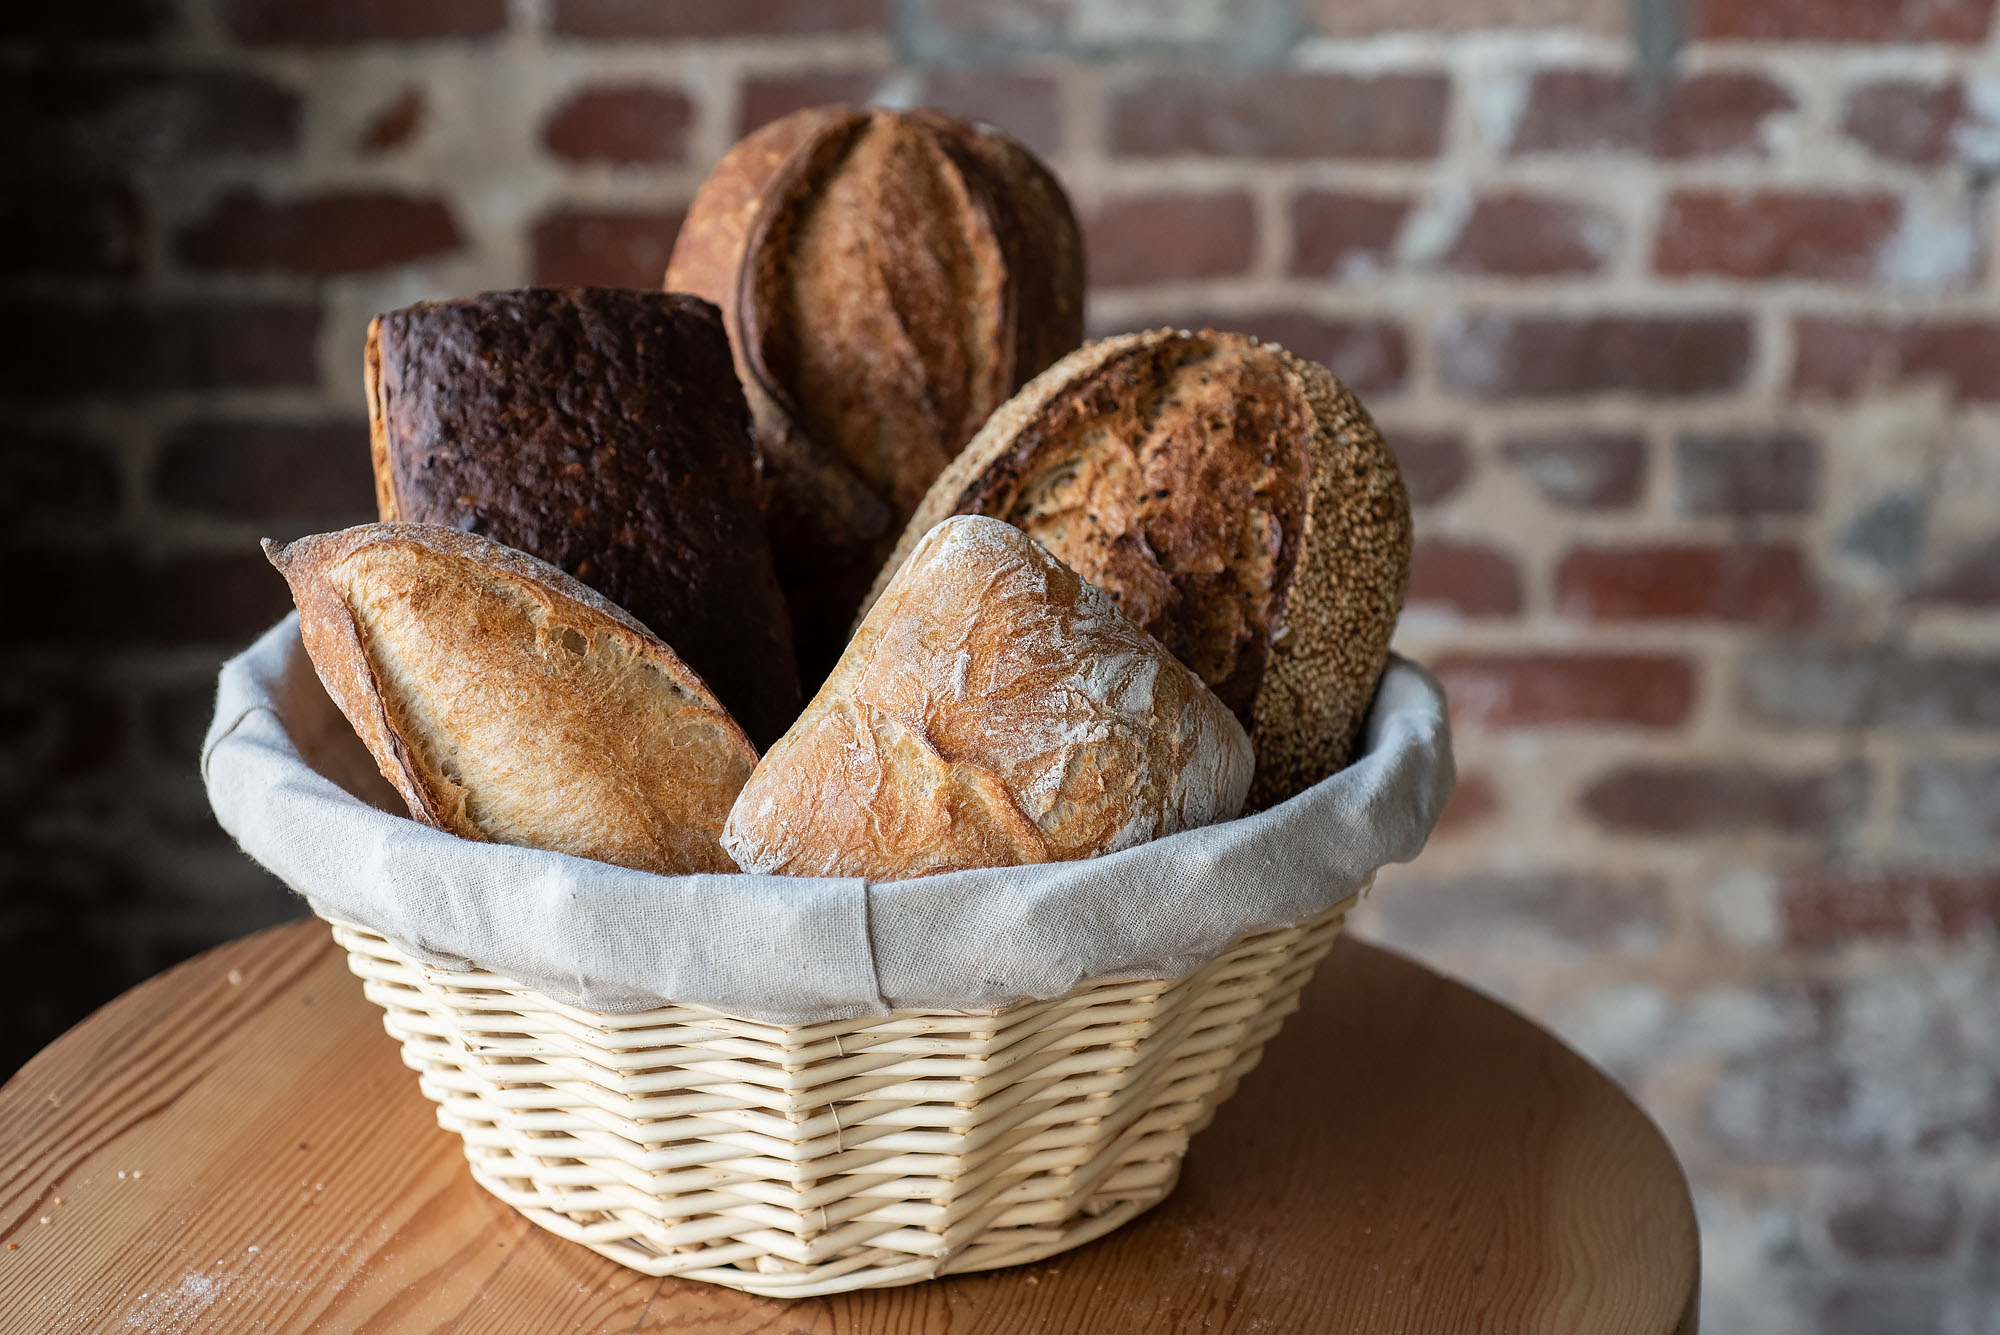 A basket of freshly baked breads on varying sizes.